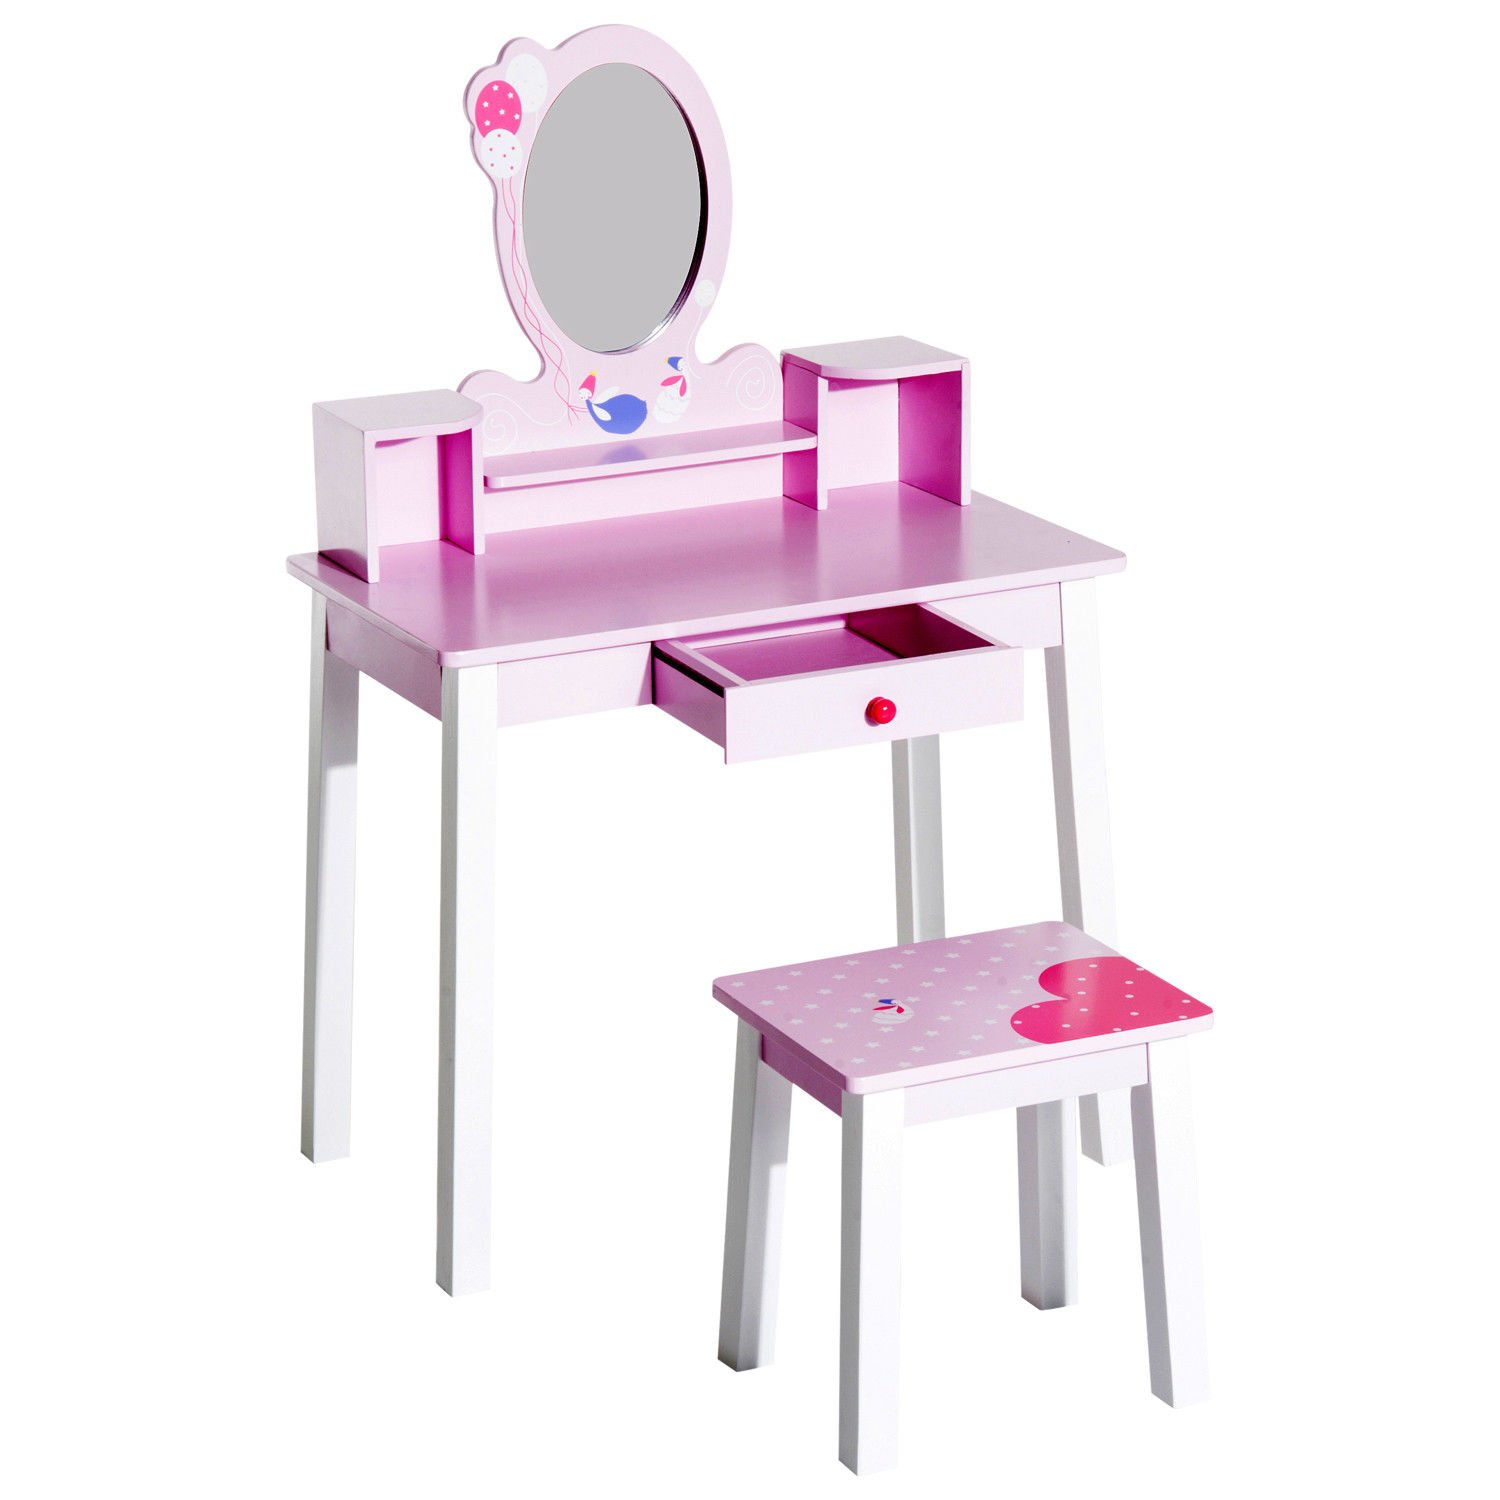 HOMCOM Kids Wooden Dressing Table and Stool Make Up Desk (Pink) Sold By MHSTAR